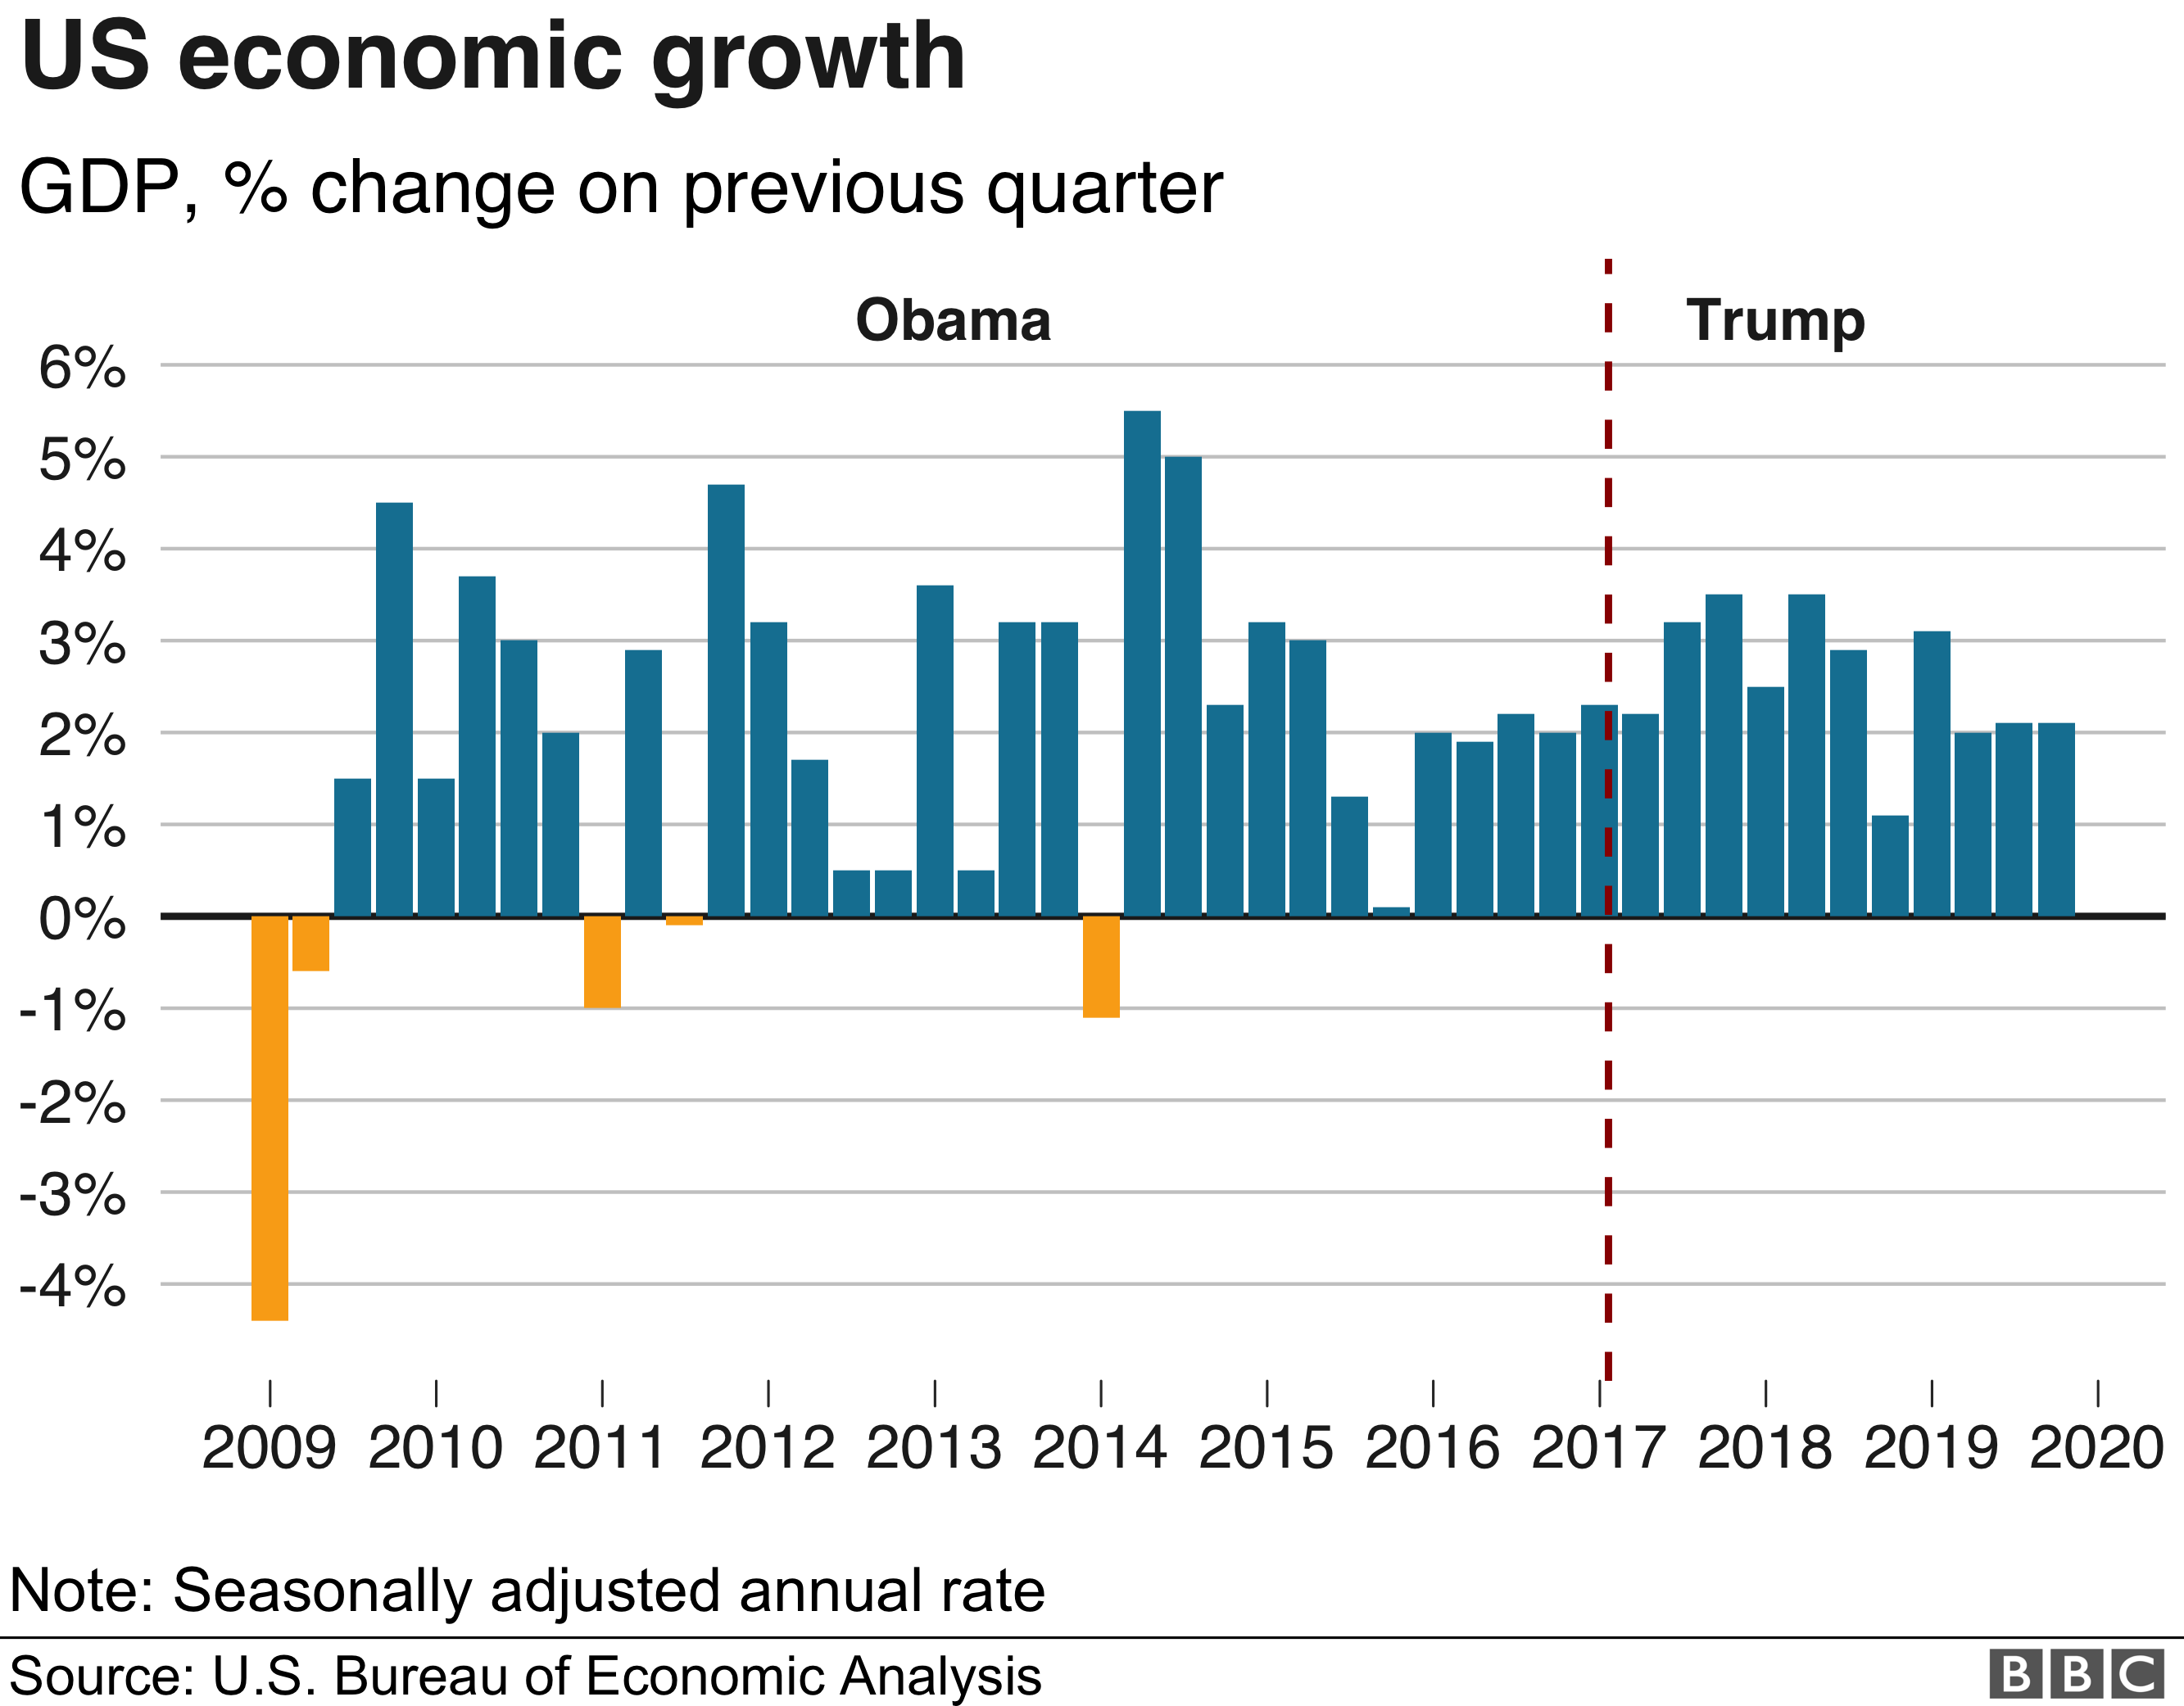 US GDP growth since 2009